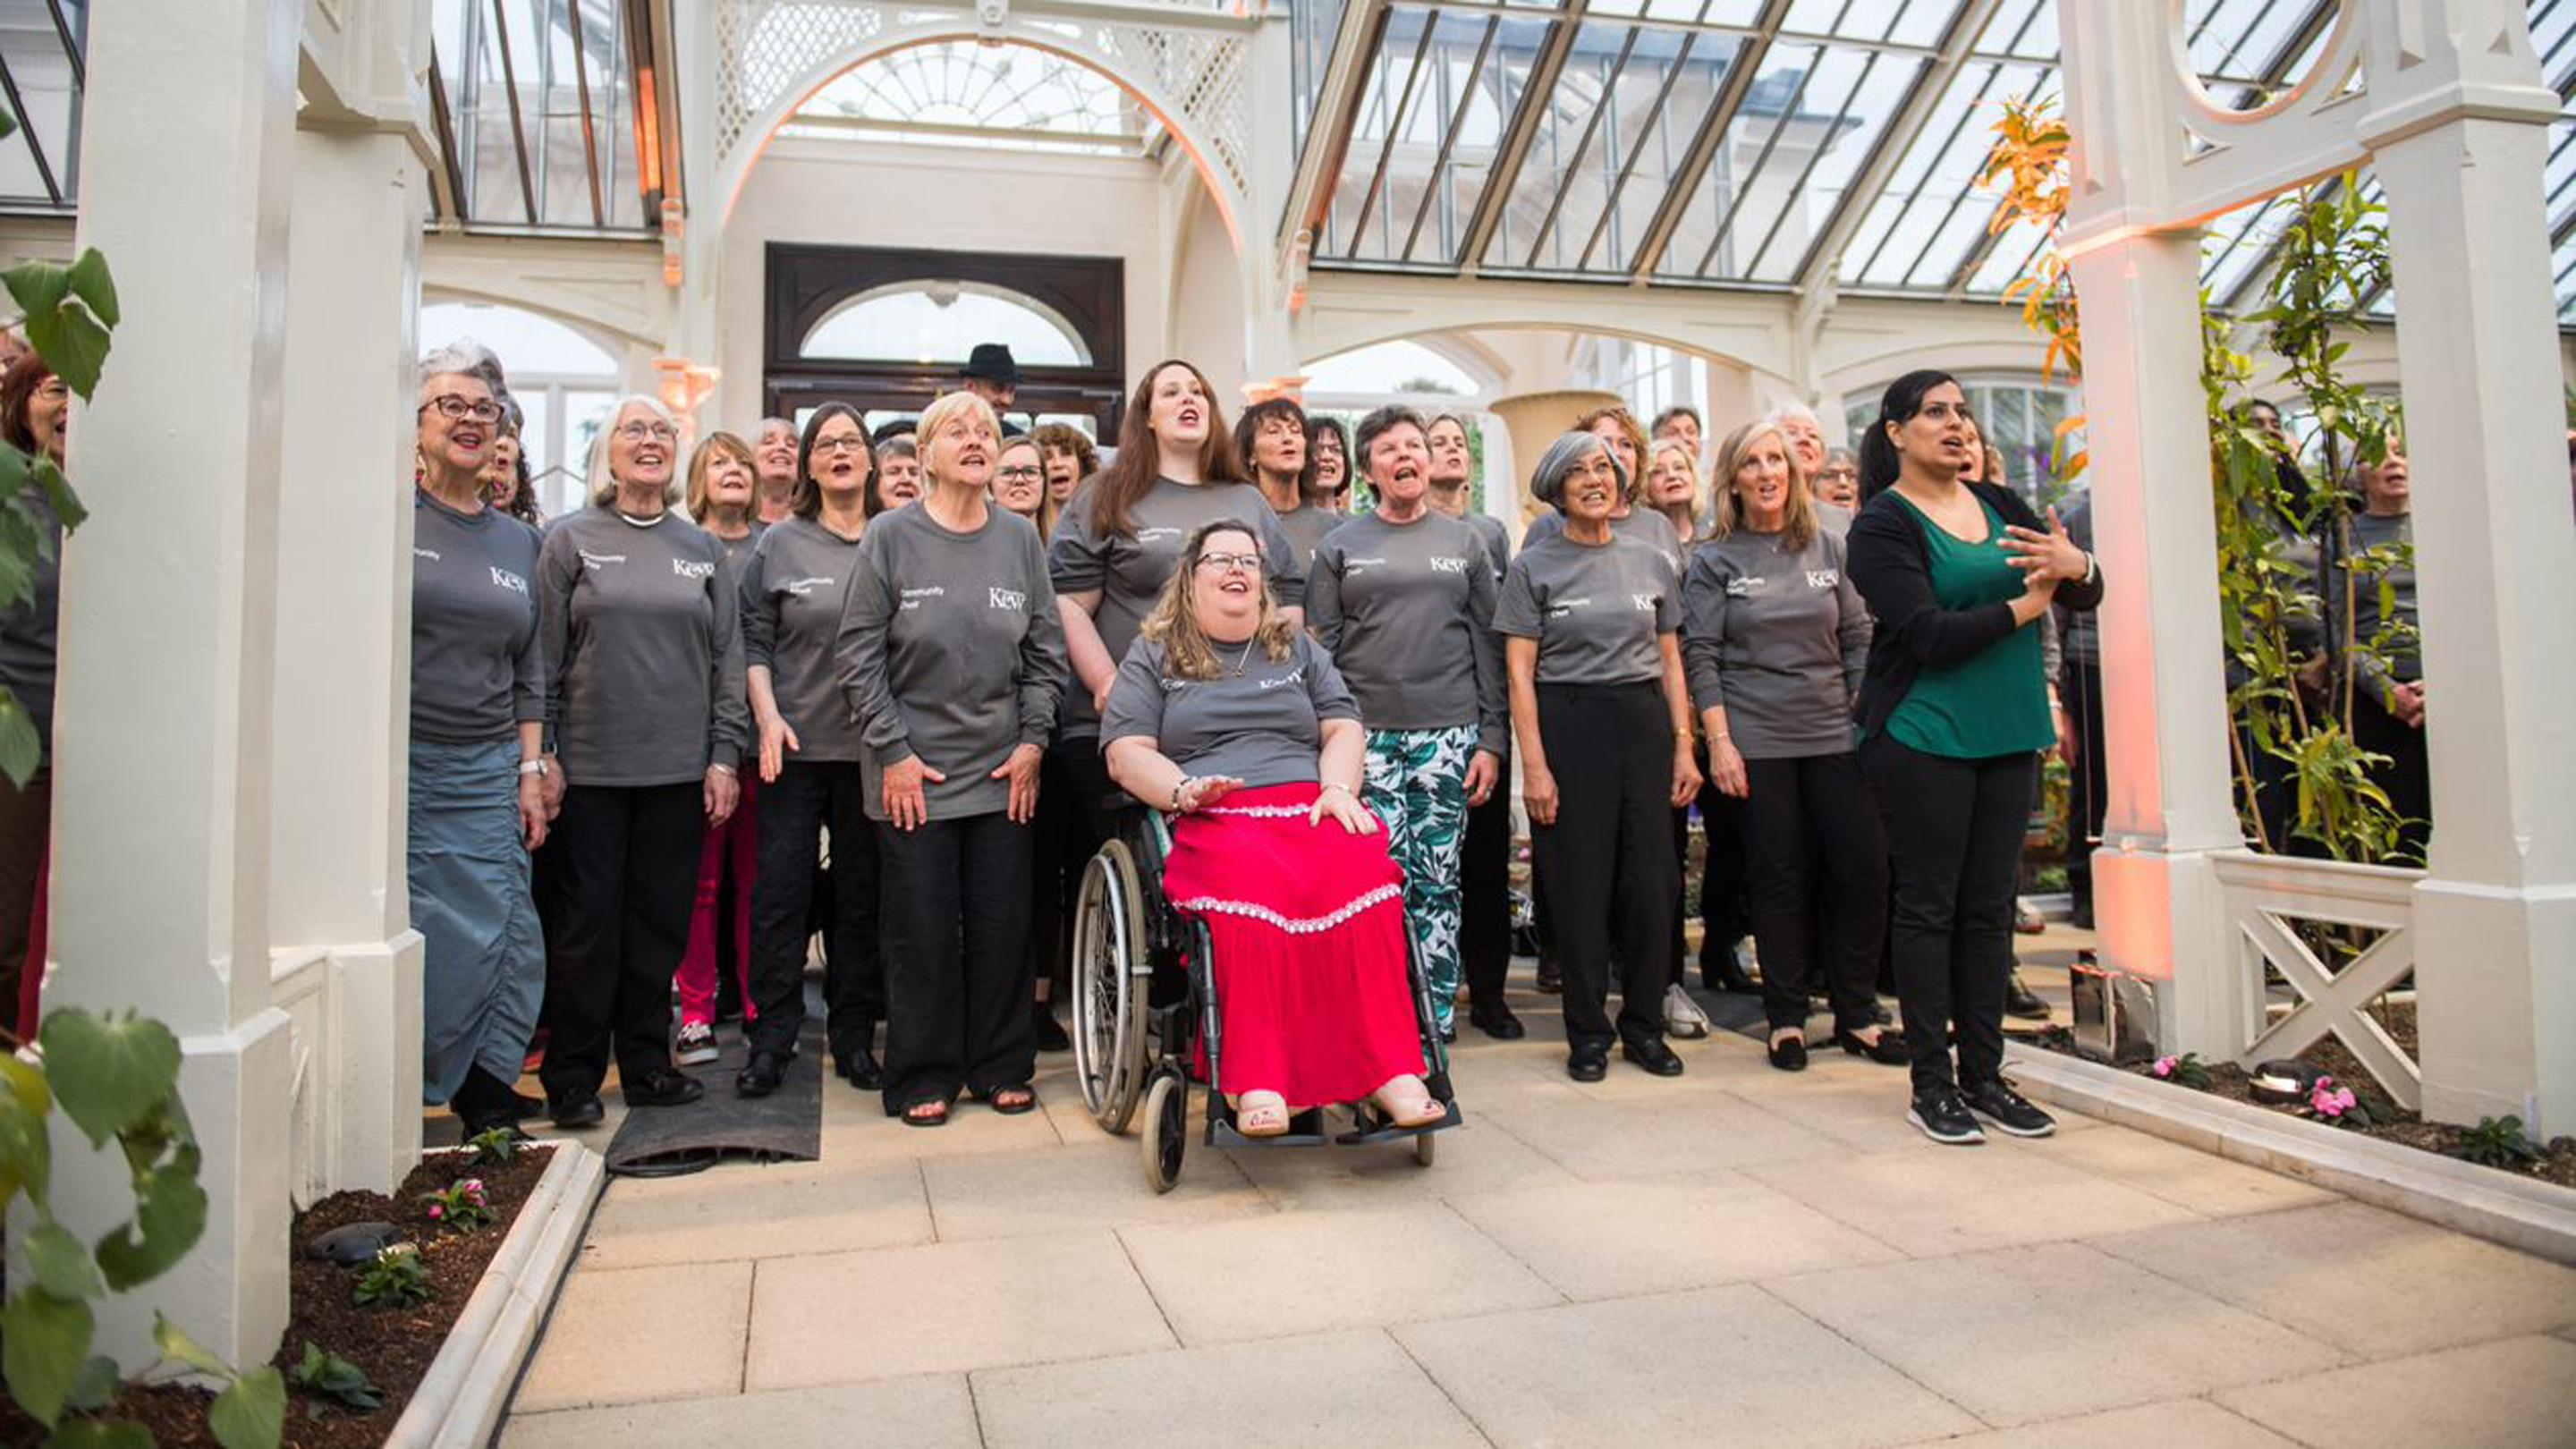 Community choir performing in the Temperate House